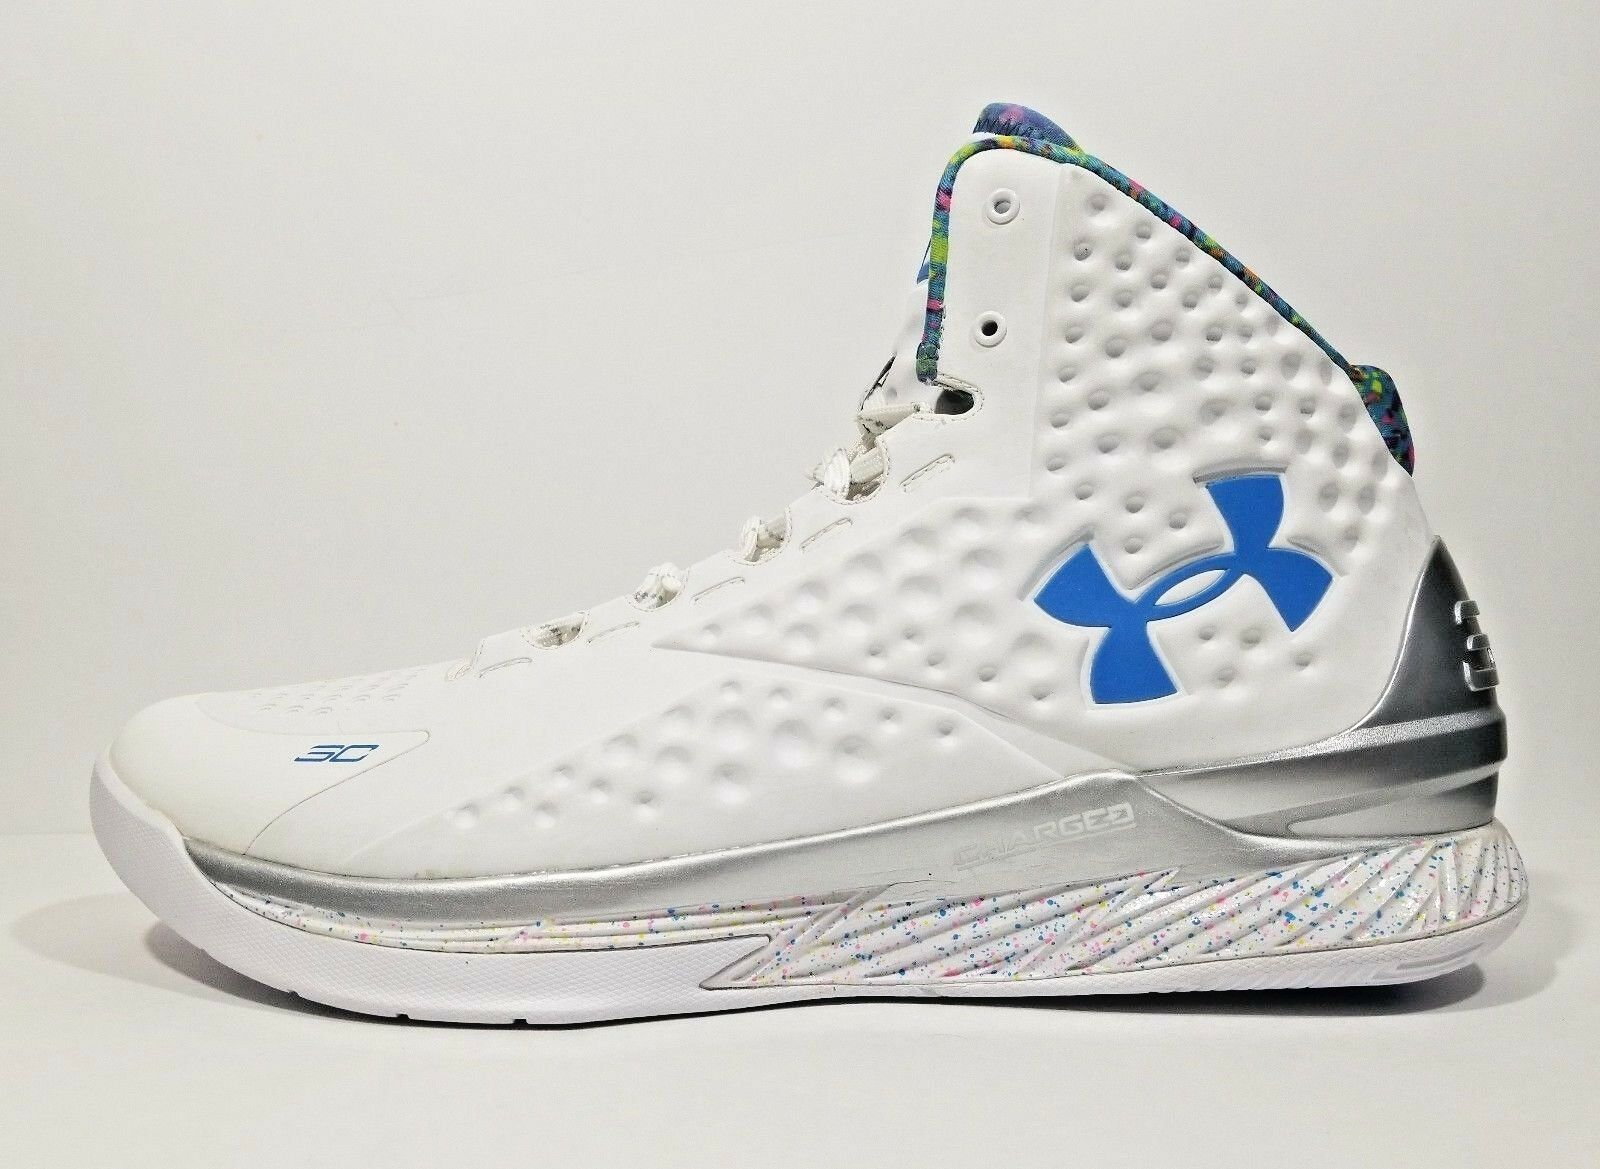 Under Armour Curry 1 PE Splash Party Uomo Basketball Shoes 12.5 White Size 12.5 Shoes 460c1c